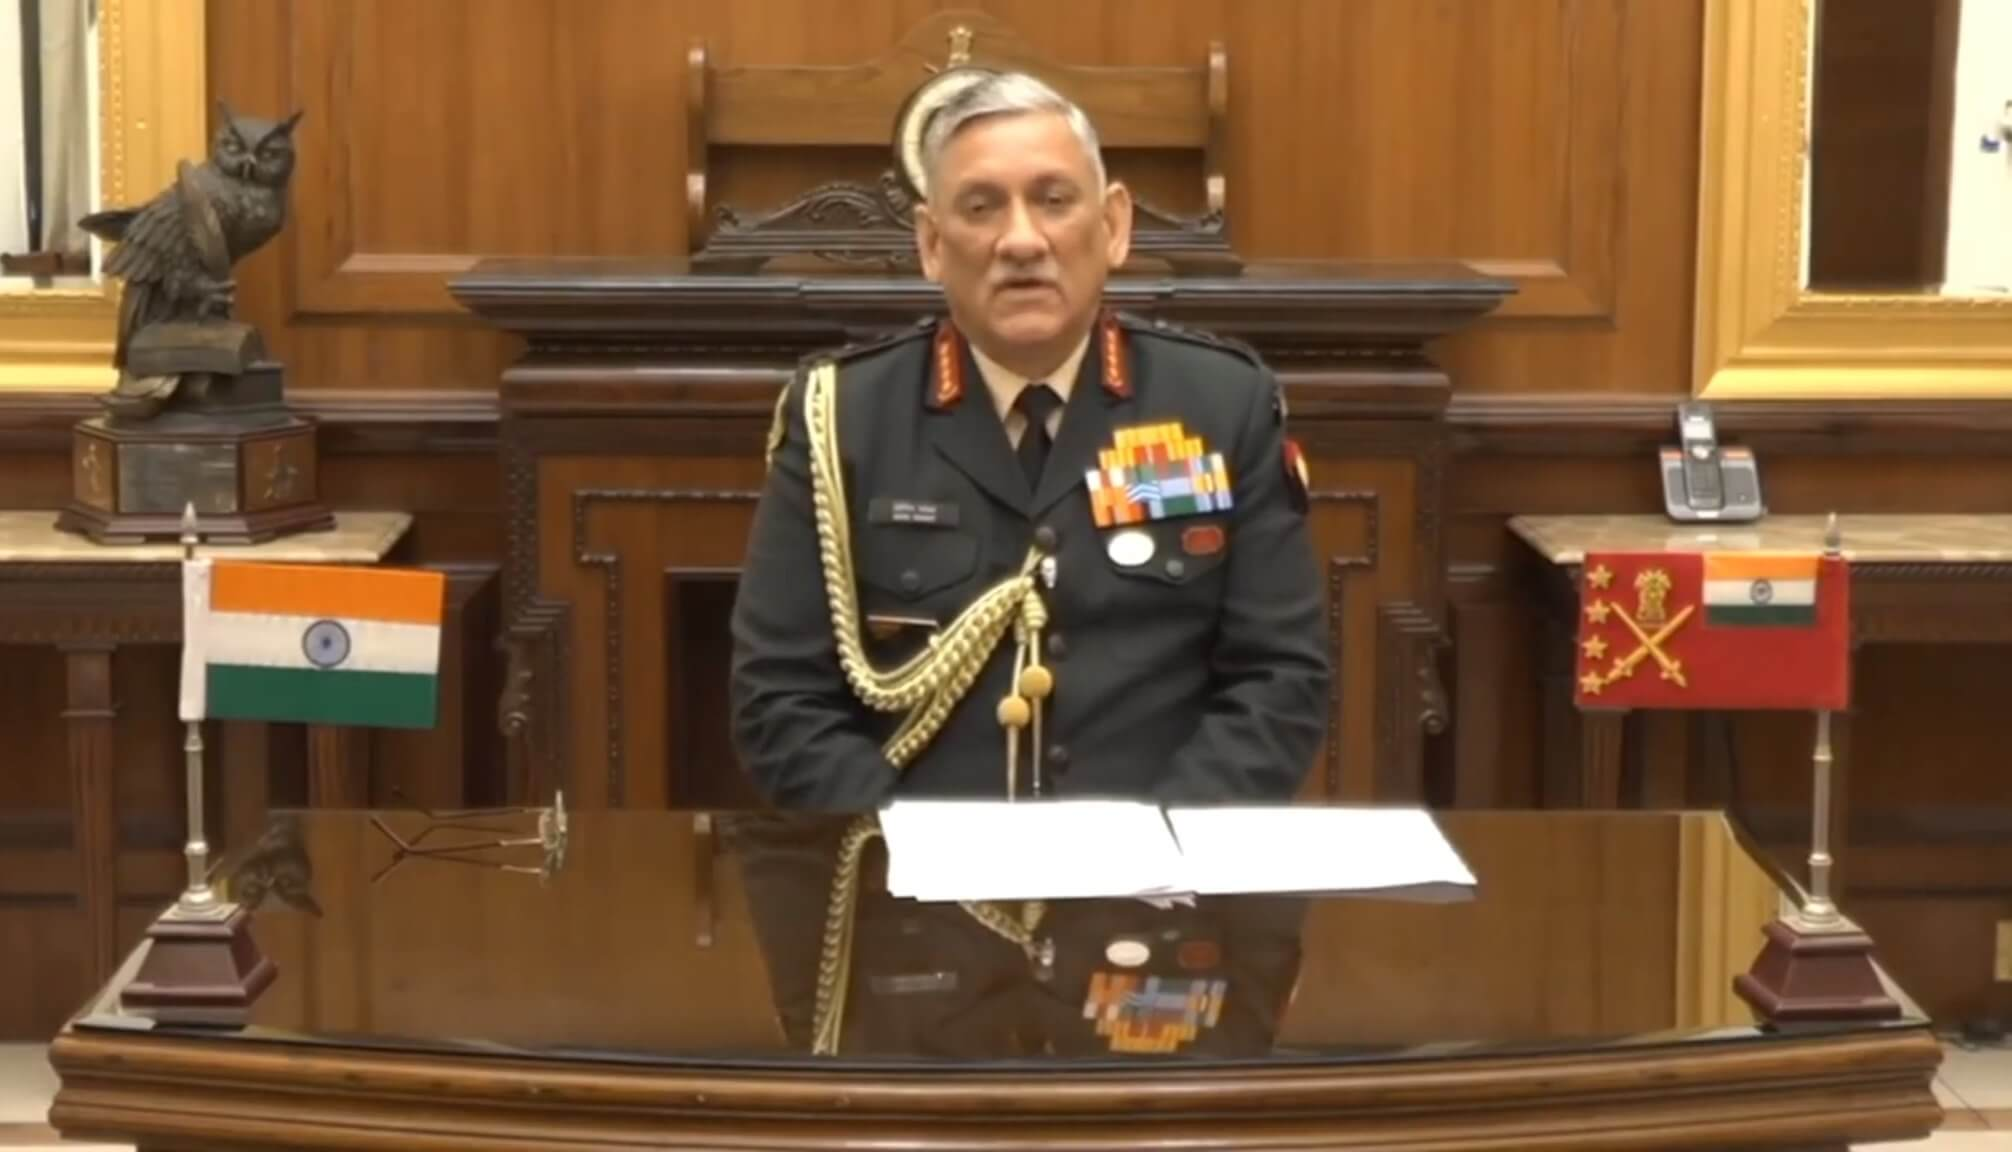 Motivational Speech of Indian Army Chief 2018 - Bipin Rawat - Motivation N You - Motivational Speech 2018 - Indian Army Chief